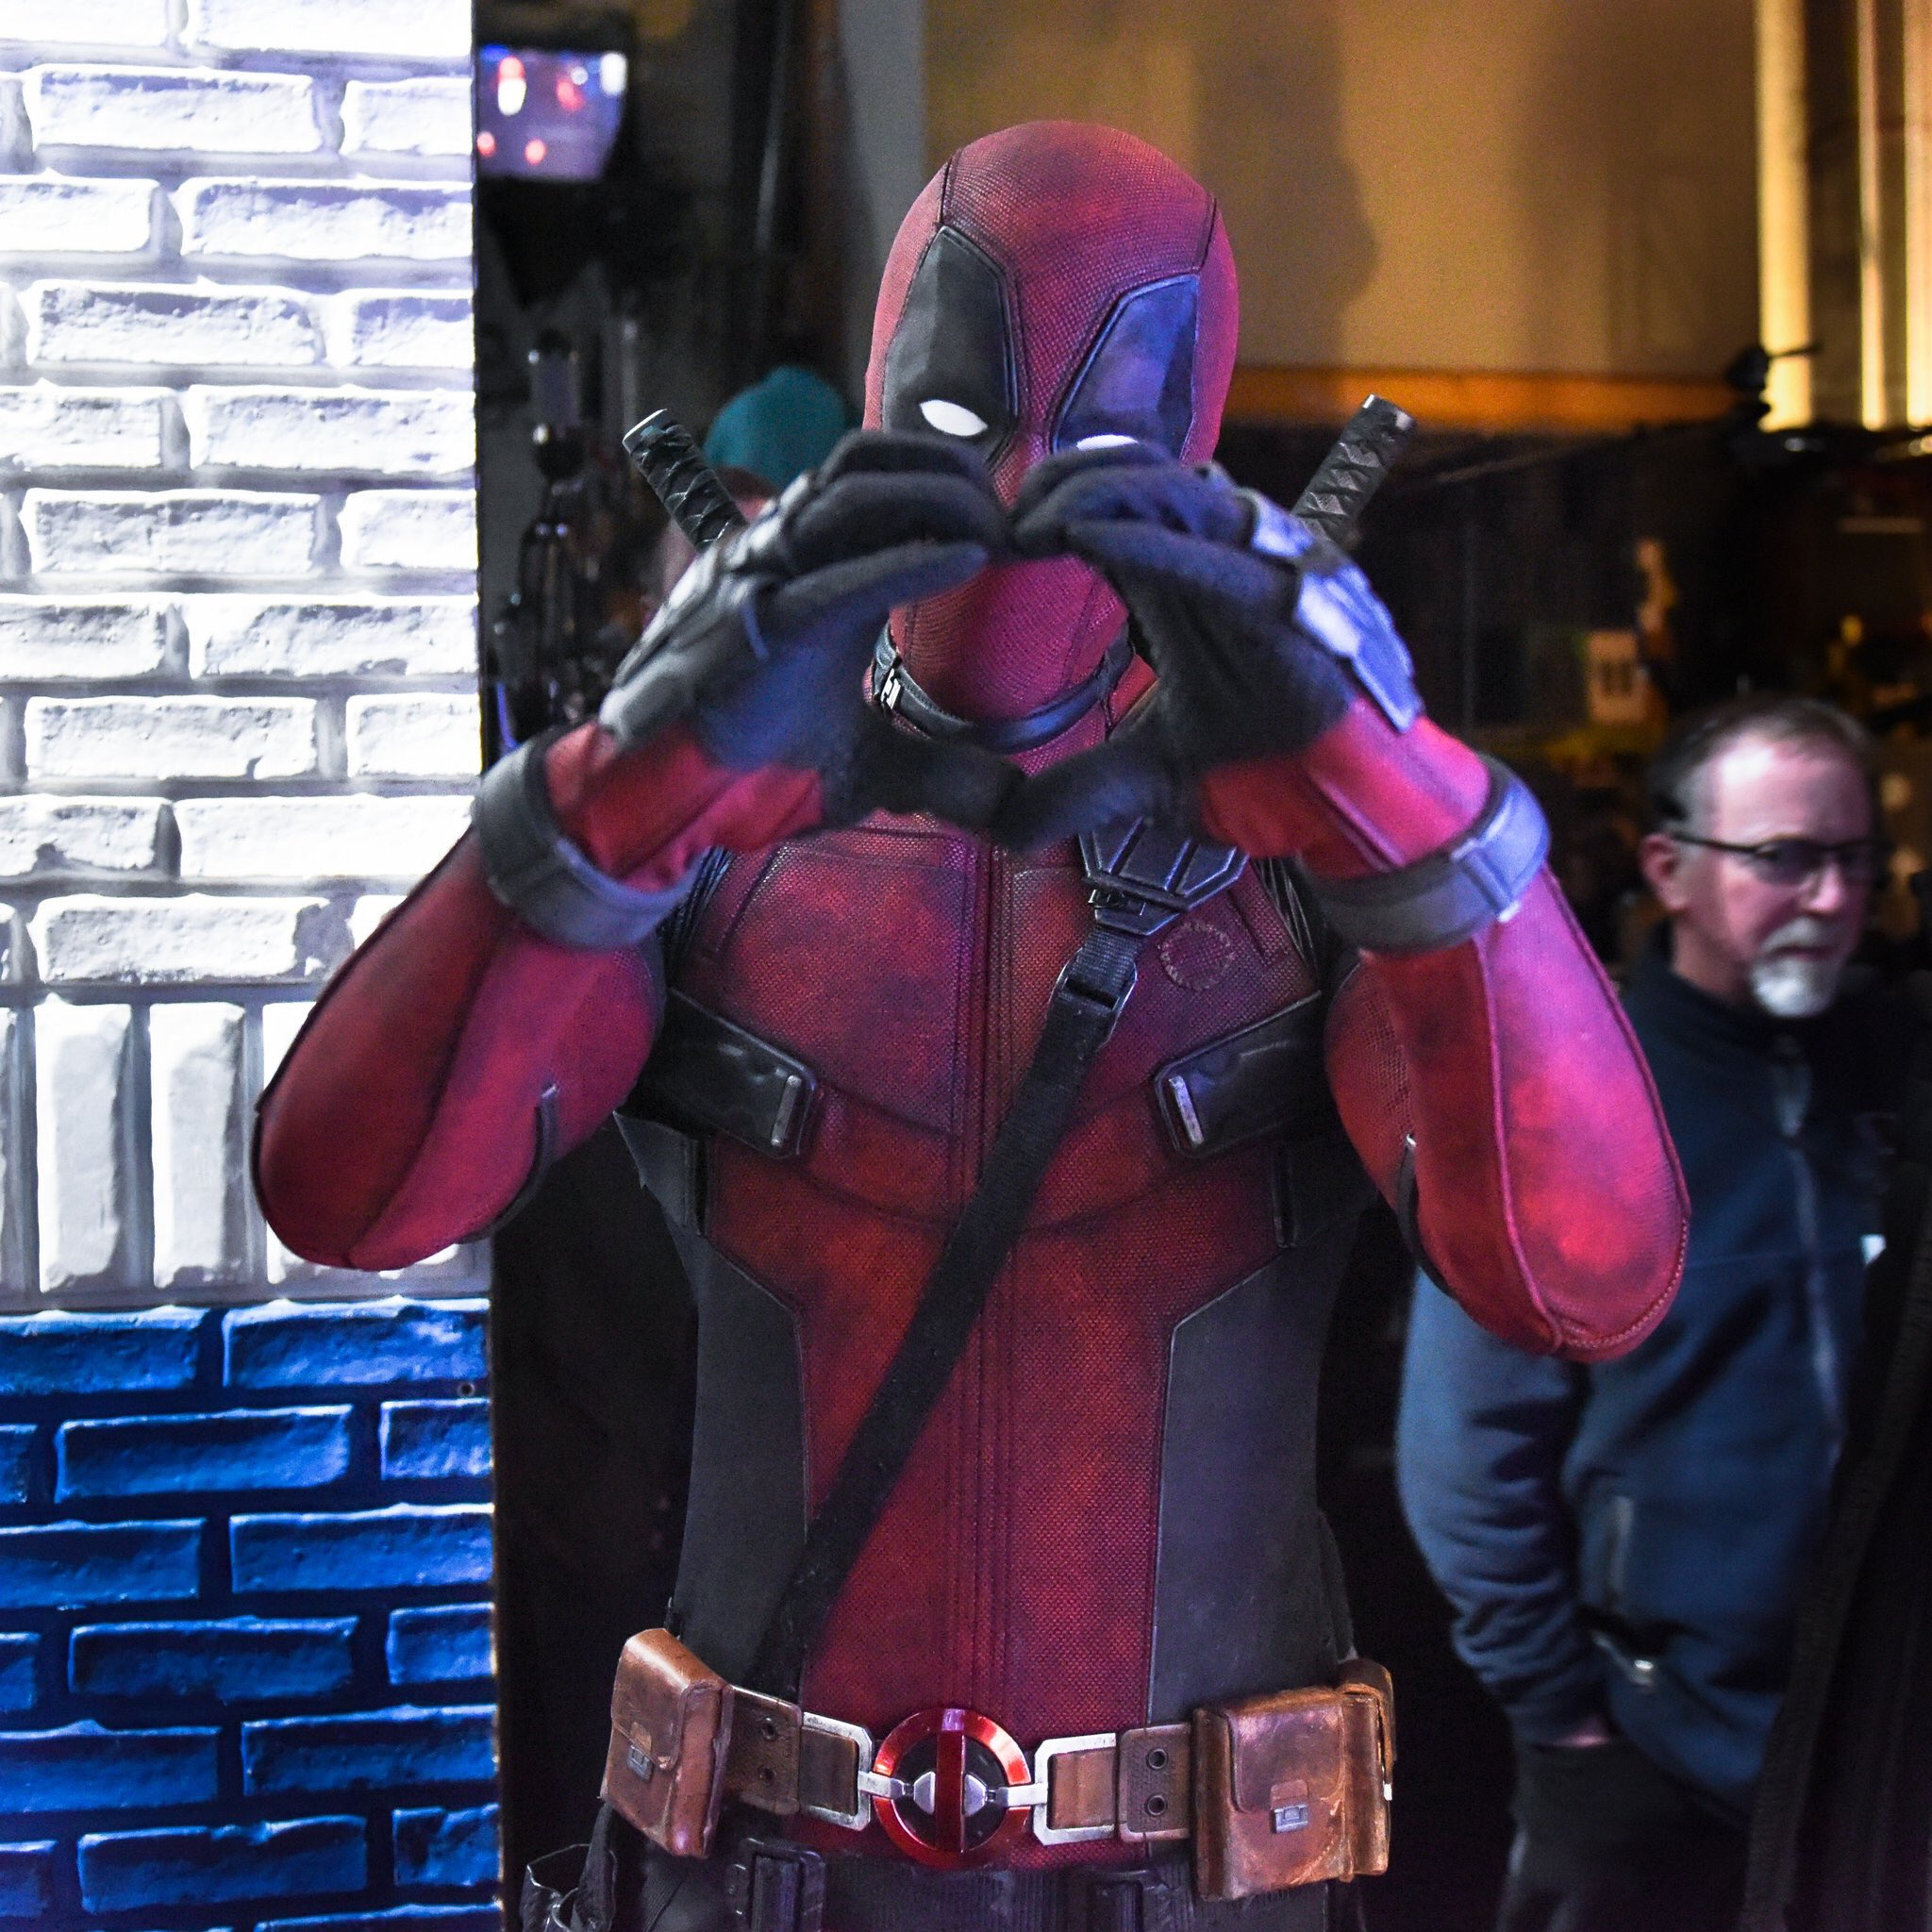 Tonight! Lighthearted high jinks with Deadpool! (Seen here strangling Vanisher.) @deadpoolmovie #LSSC #hear https://t.co/ButMgmBy7o